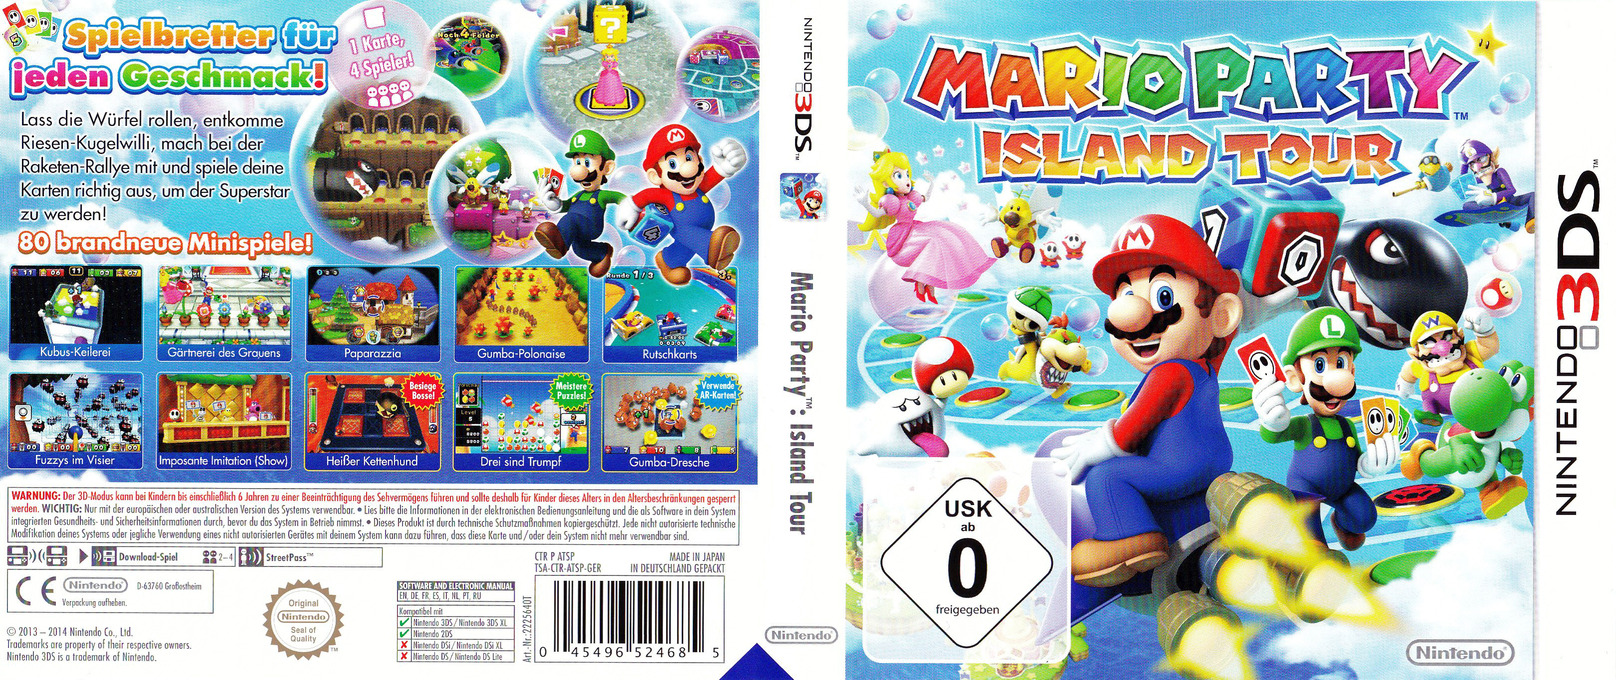 Is Mario Party Island Tour Online